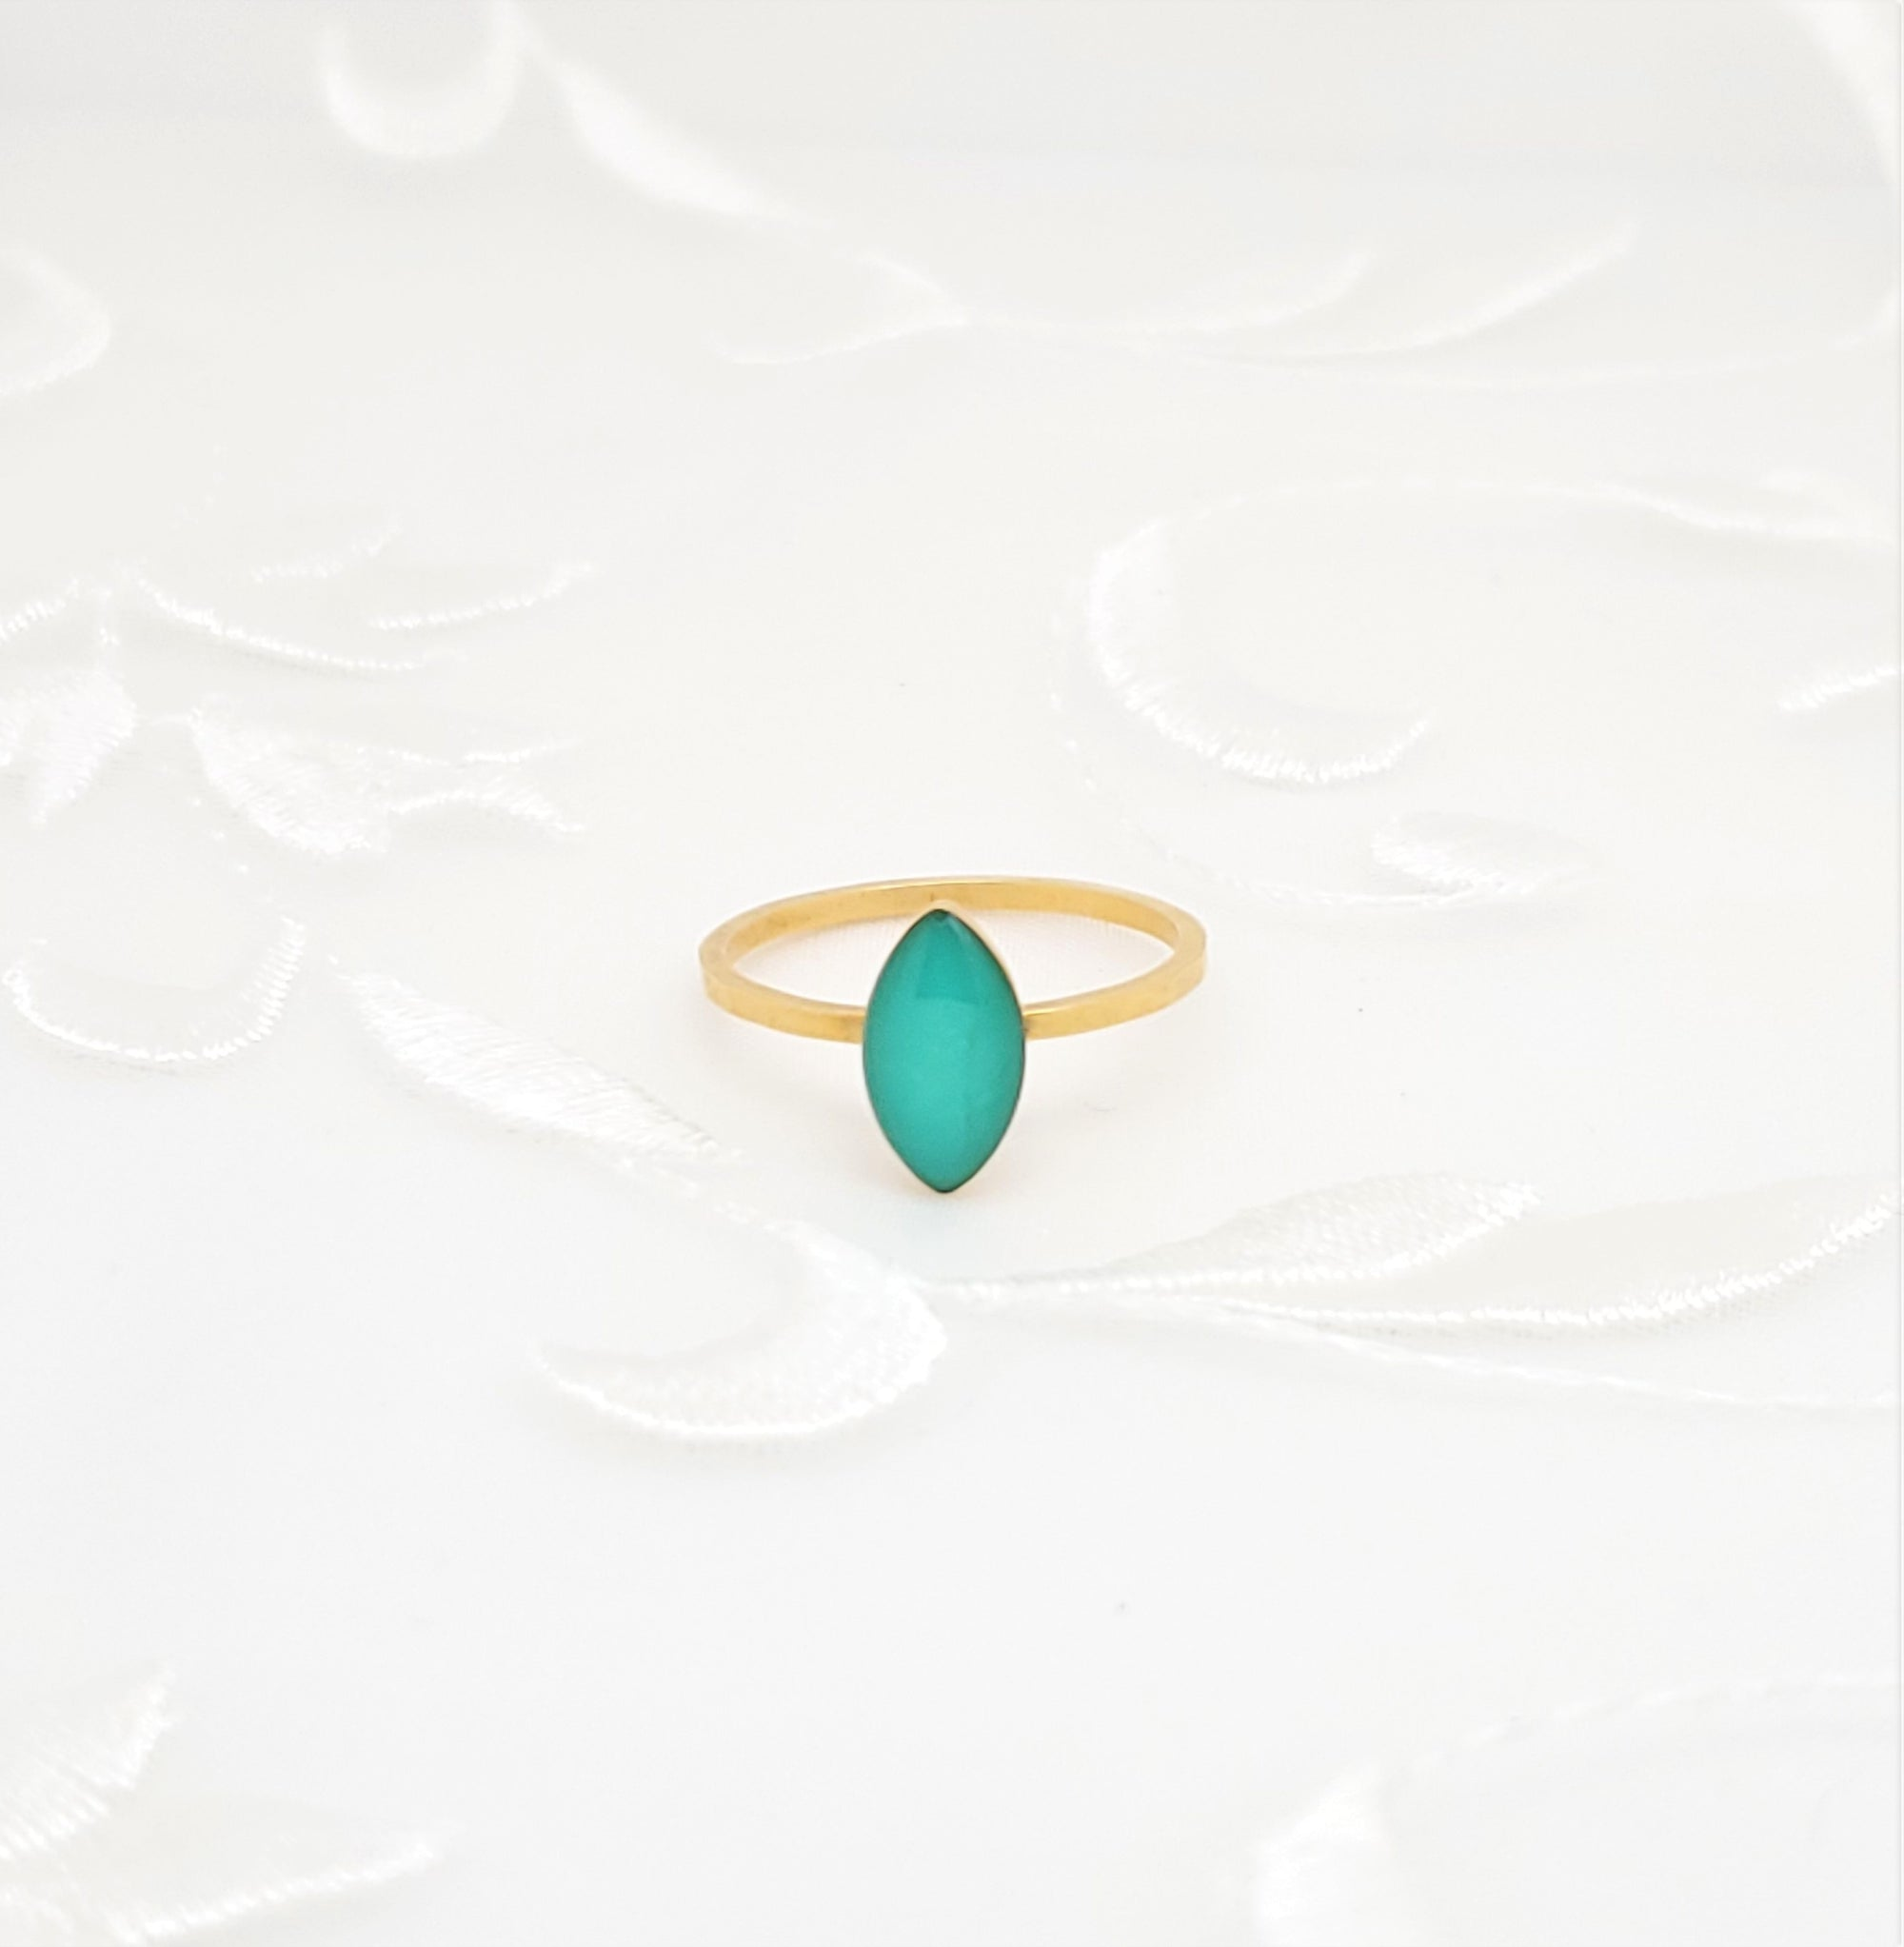 Antique Gold Navette Ring with Turquoise Resin